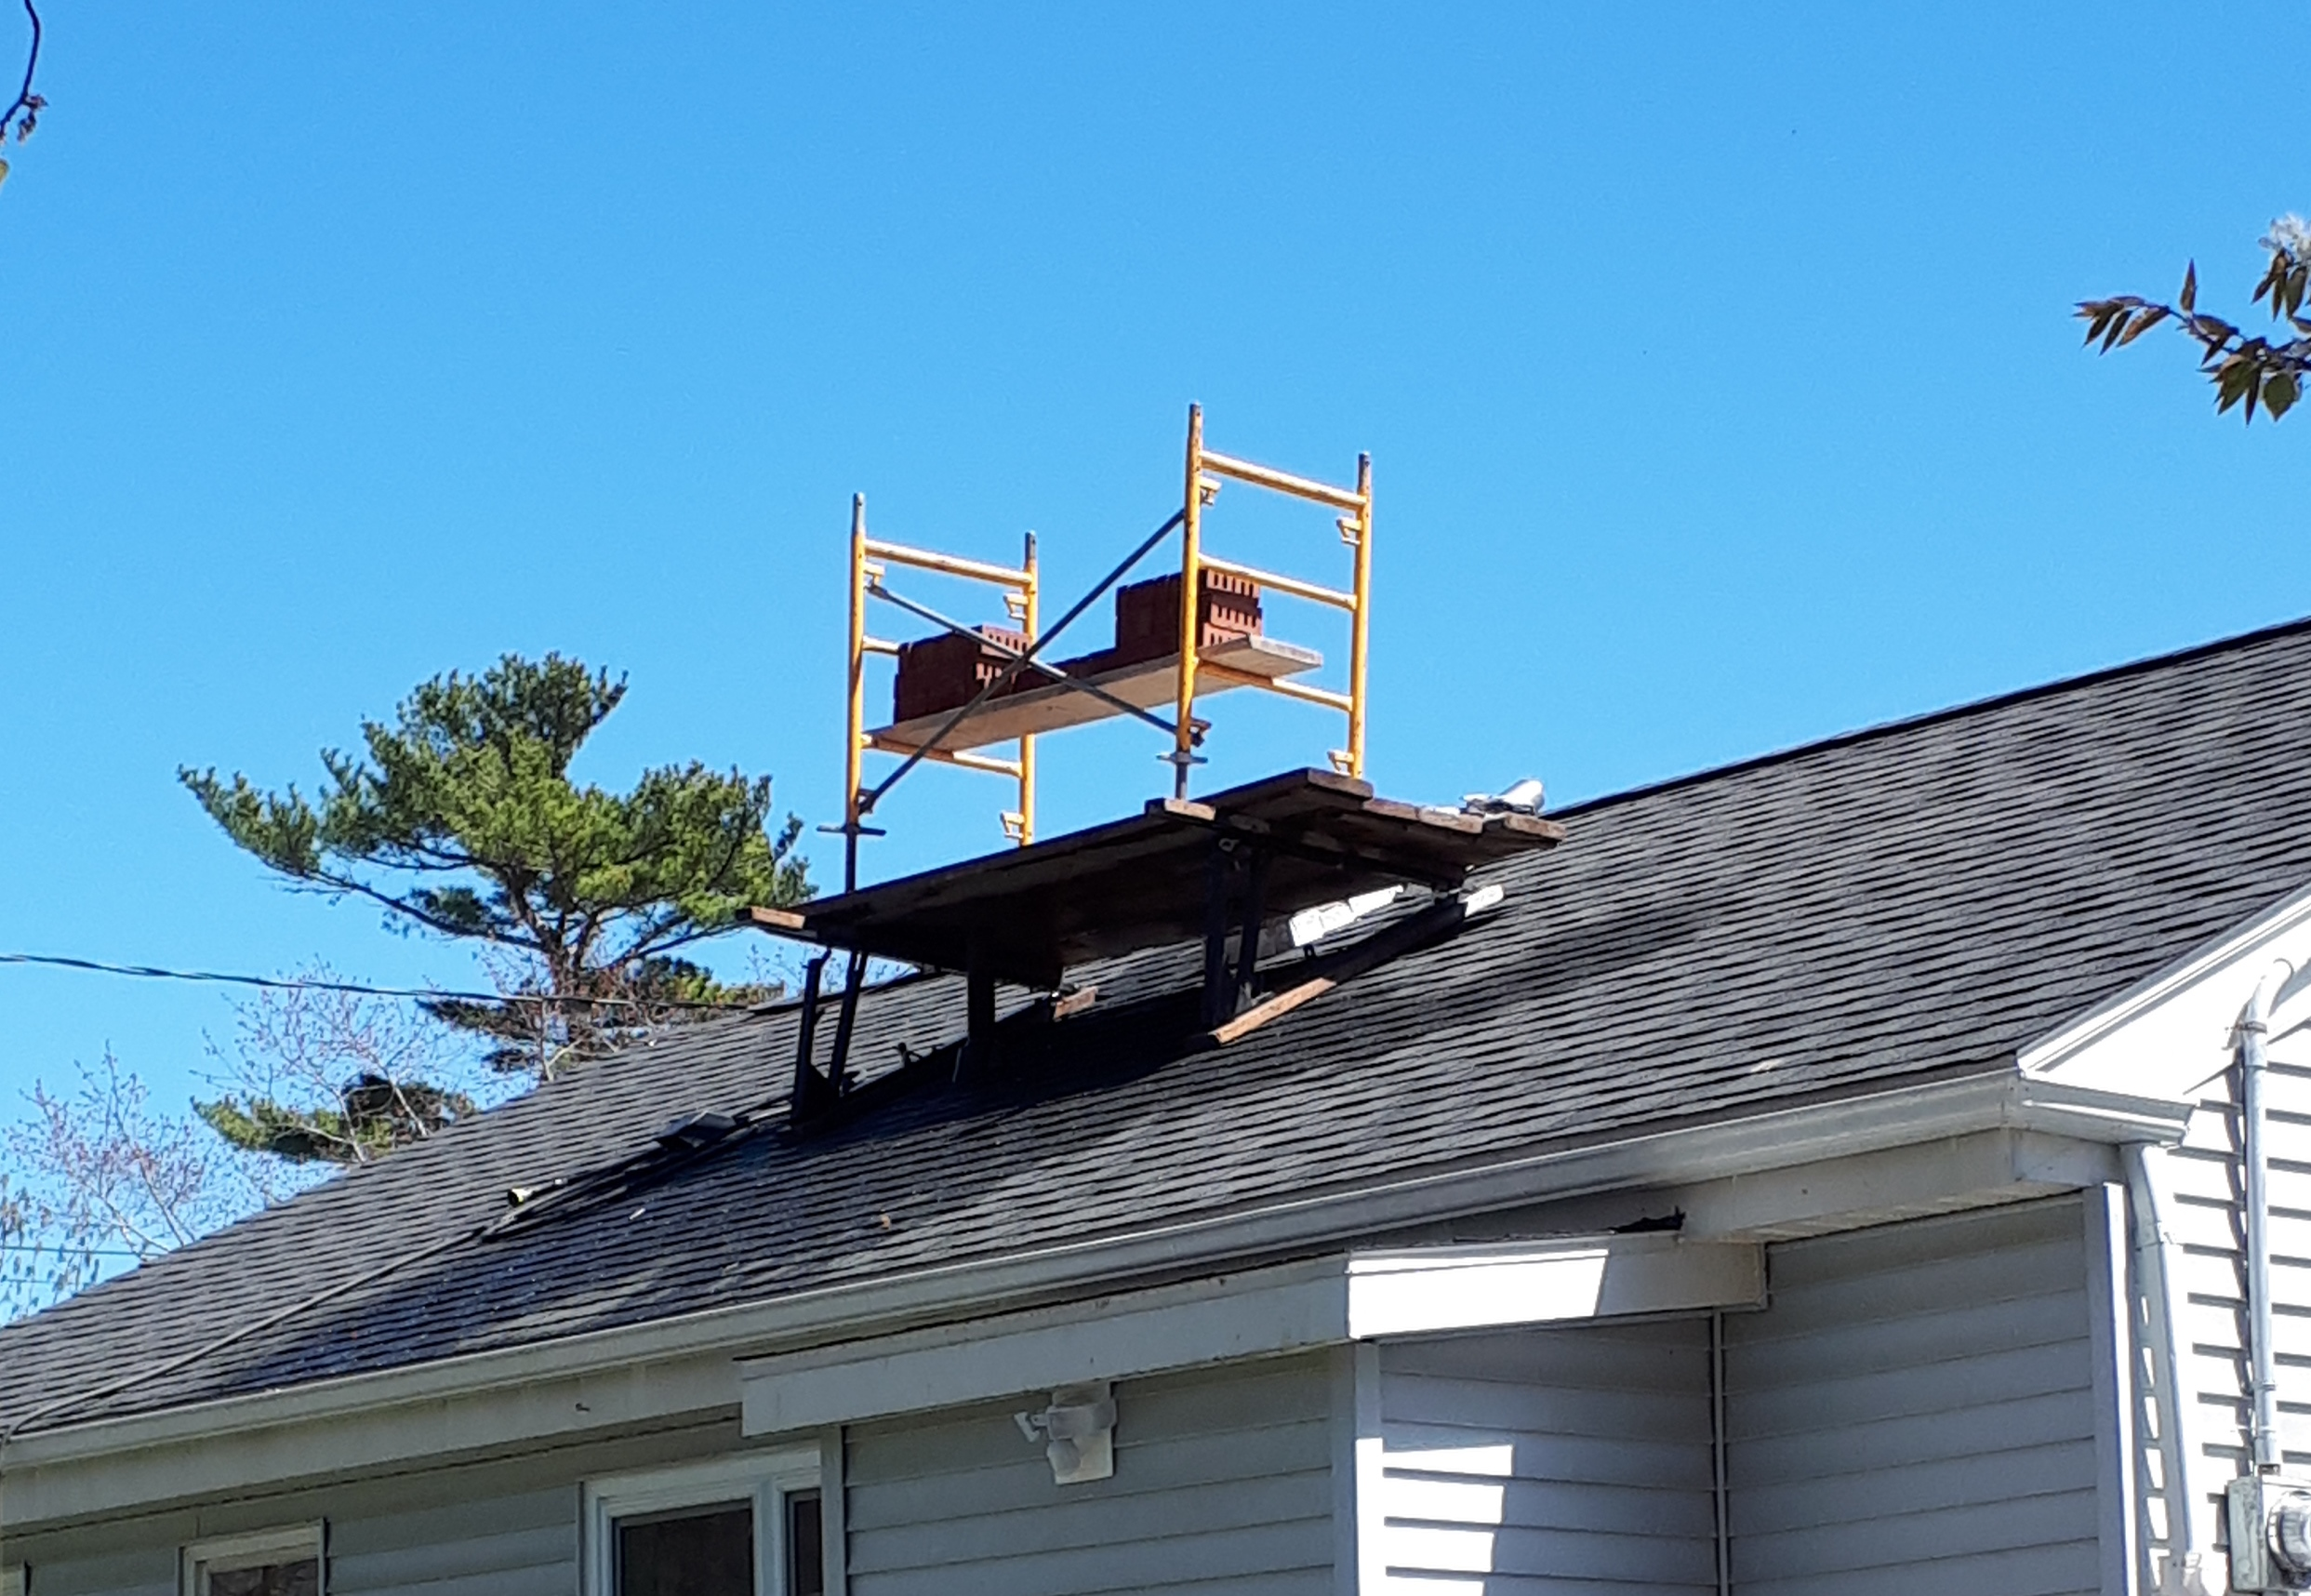 image of chimney construction-rebuild services completed in Fall River, NS by Pro Chimney Services based in Halifax, NS servicing all of the Halifax-Dartmouth Regional Municipality, Bedford, Sackville, Mount Uniacke, Windsor, Hantsport , Wolfville, Kentville, Chester, Mahone Bay, Lunenburg, Bridgewater, Liverpool, Fall River, Wellington, Enfield, Elmsdale, Brookfield, Truro, Musquodoboit Harbour & surrounding areas.